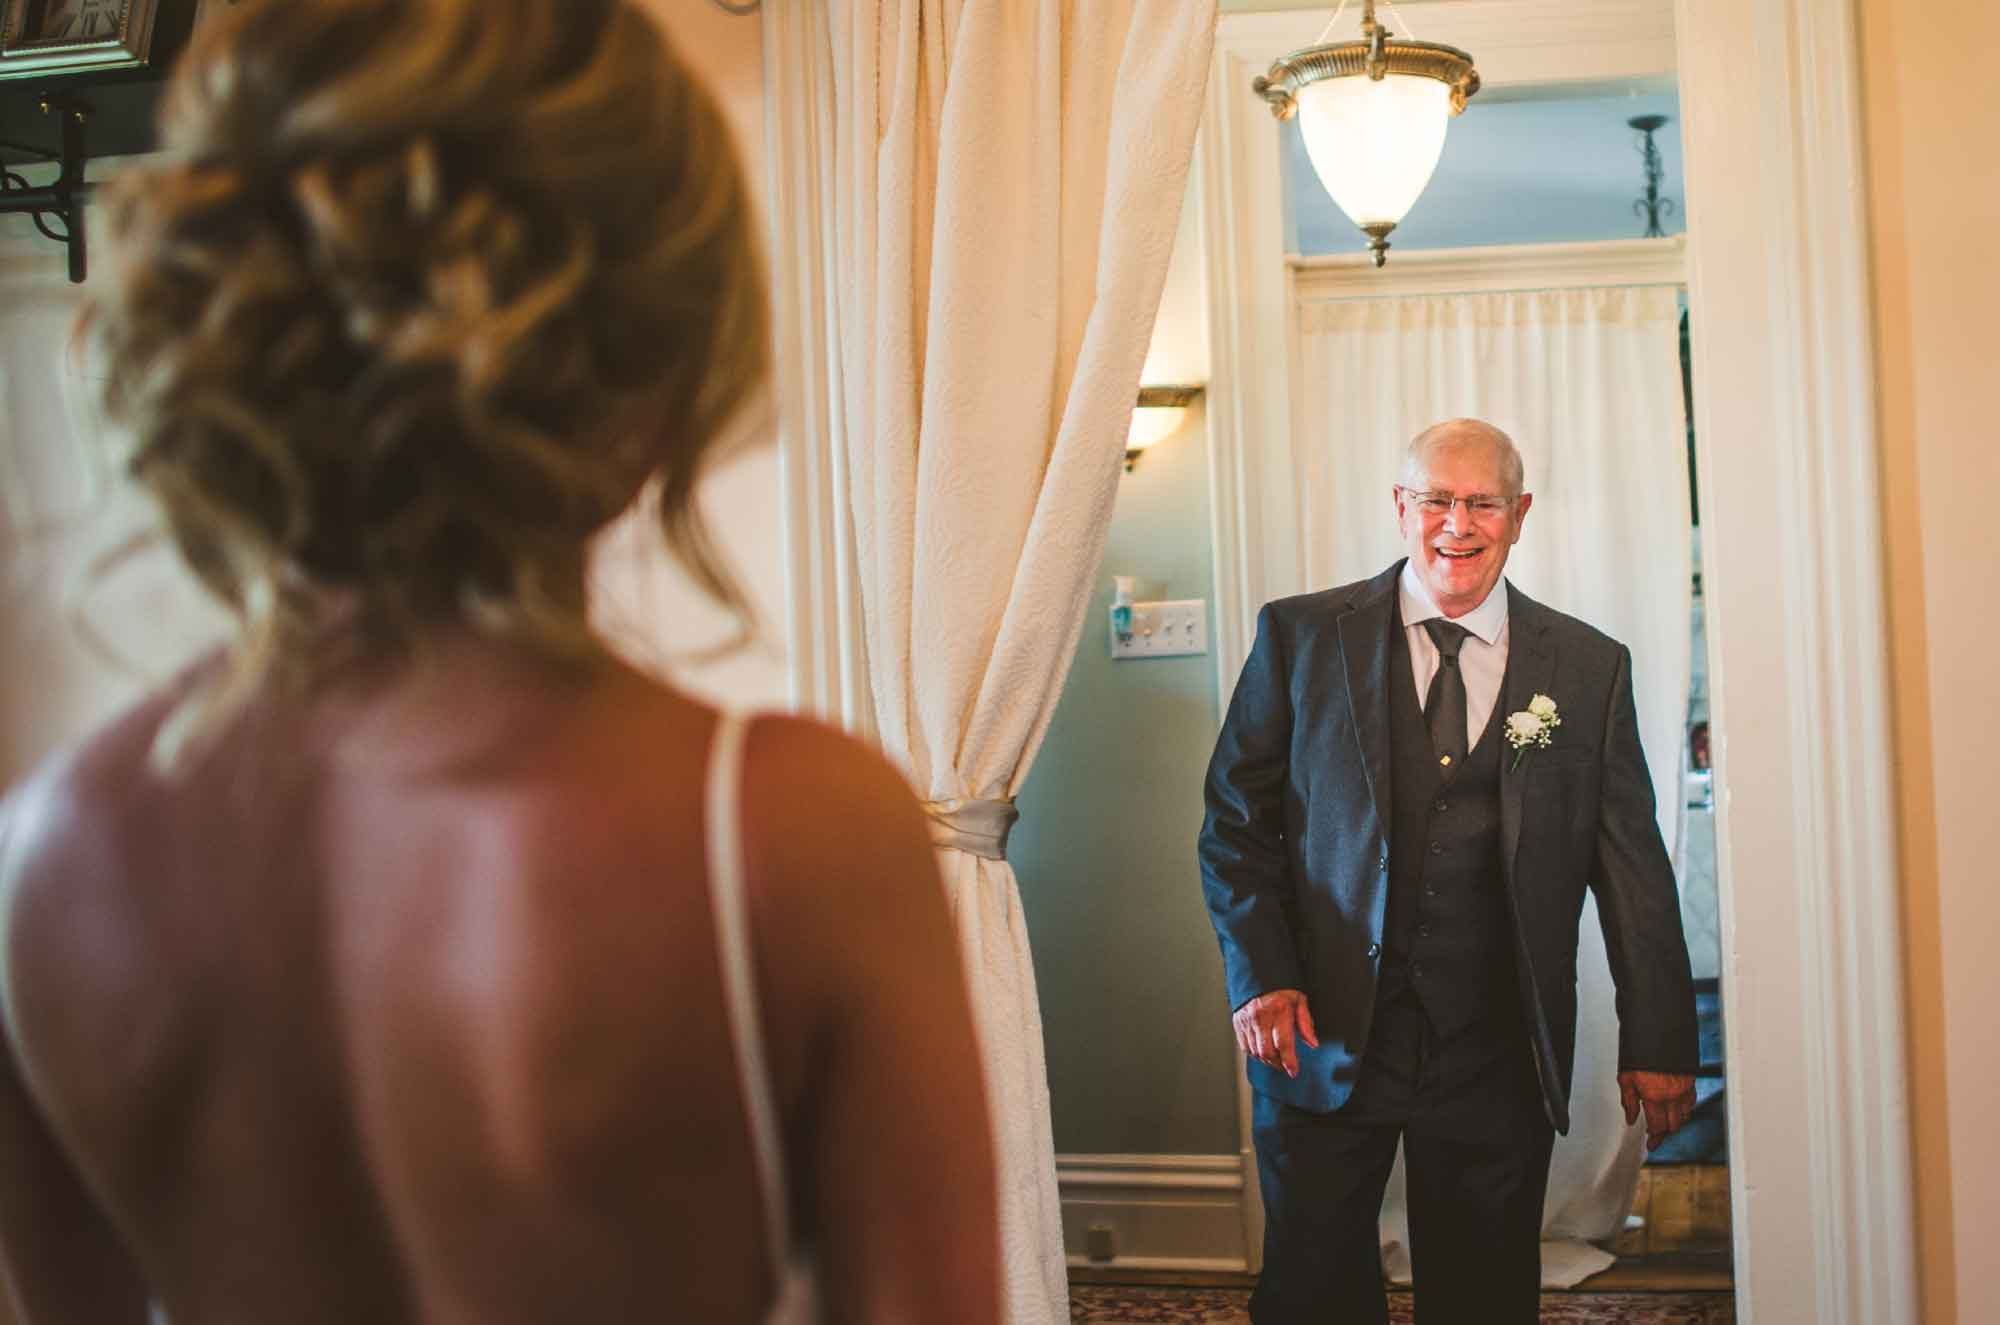 First look father of the bride